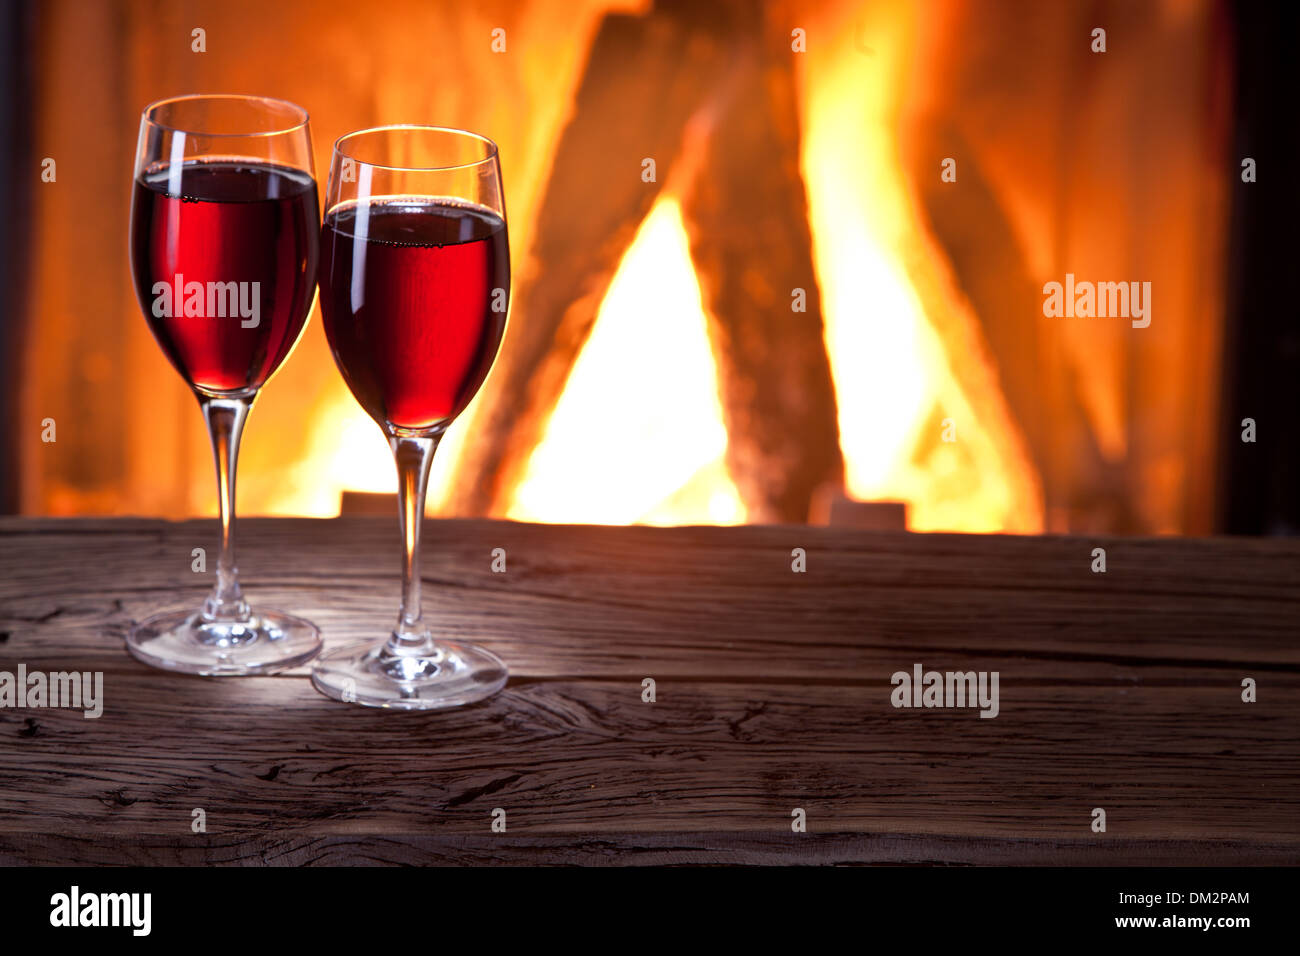 Glasses of wine and a fireplace fire. - Stock Image